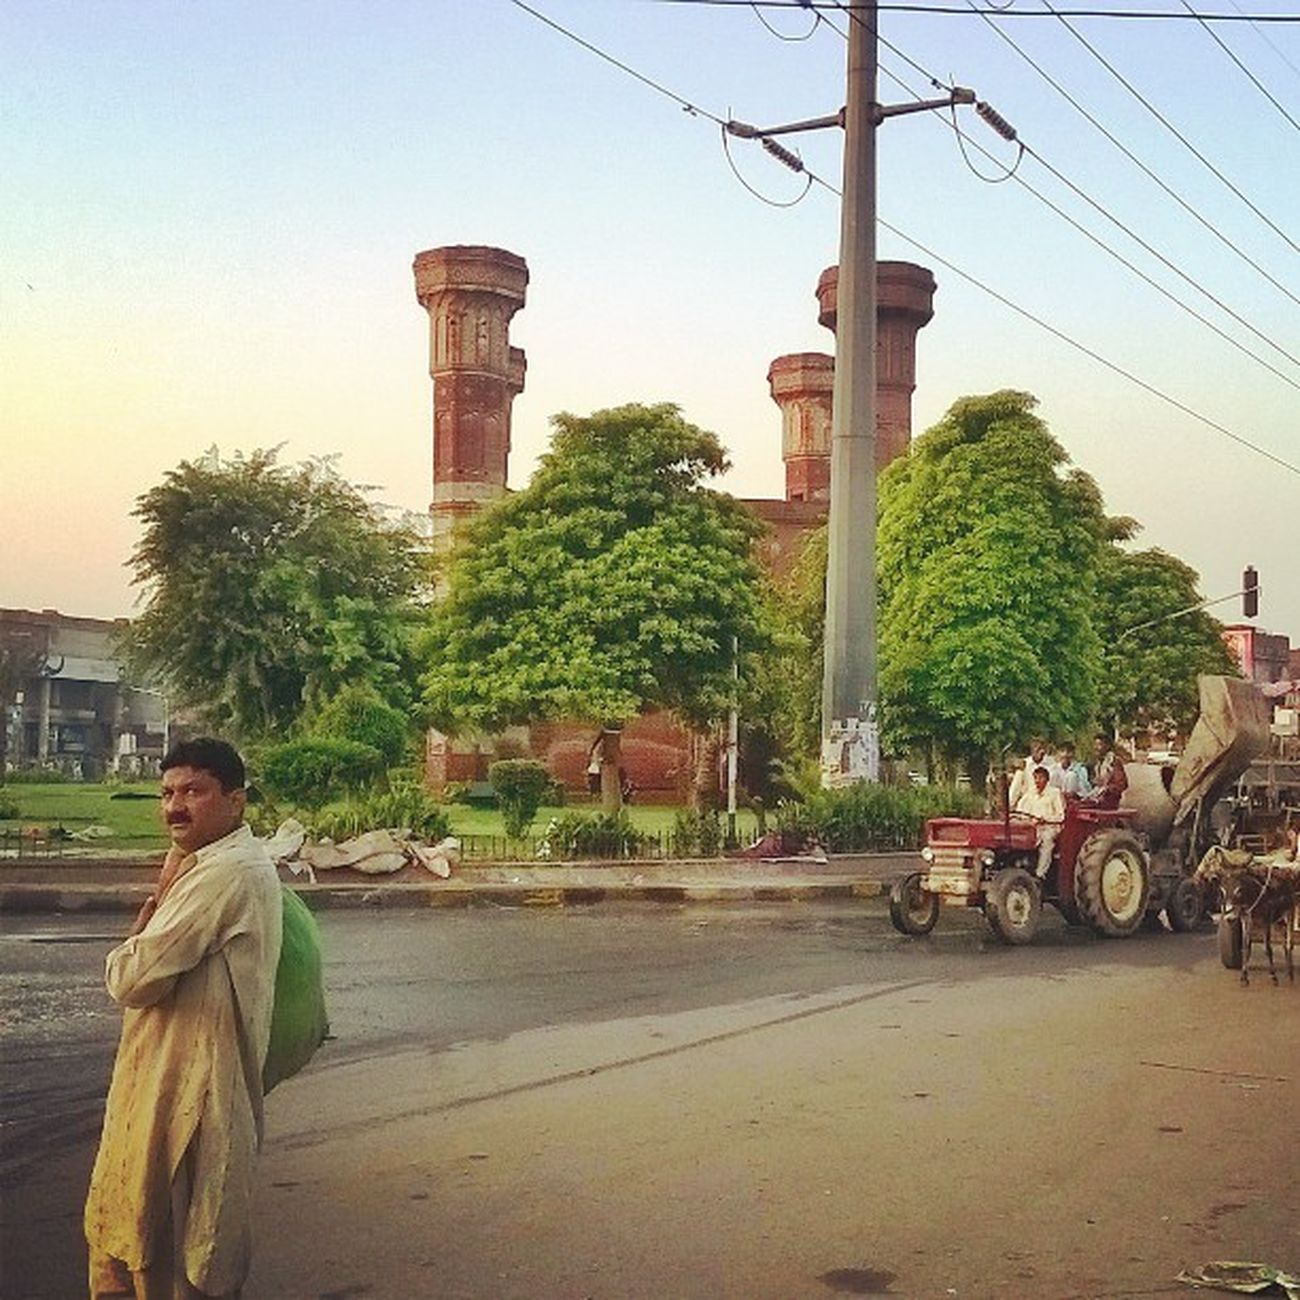 Lategram Wapsi Lahore Choburgi Waiting Subha Subha Morning Glory